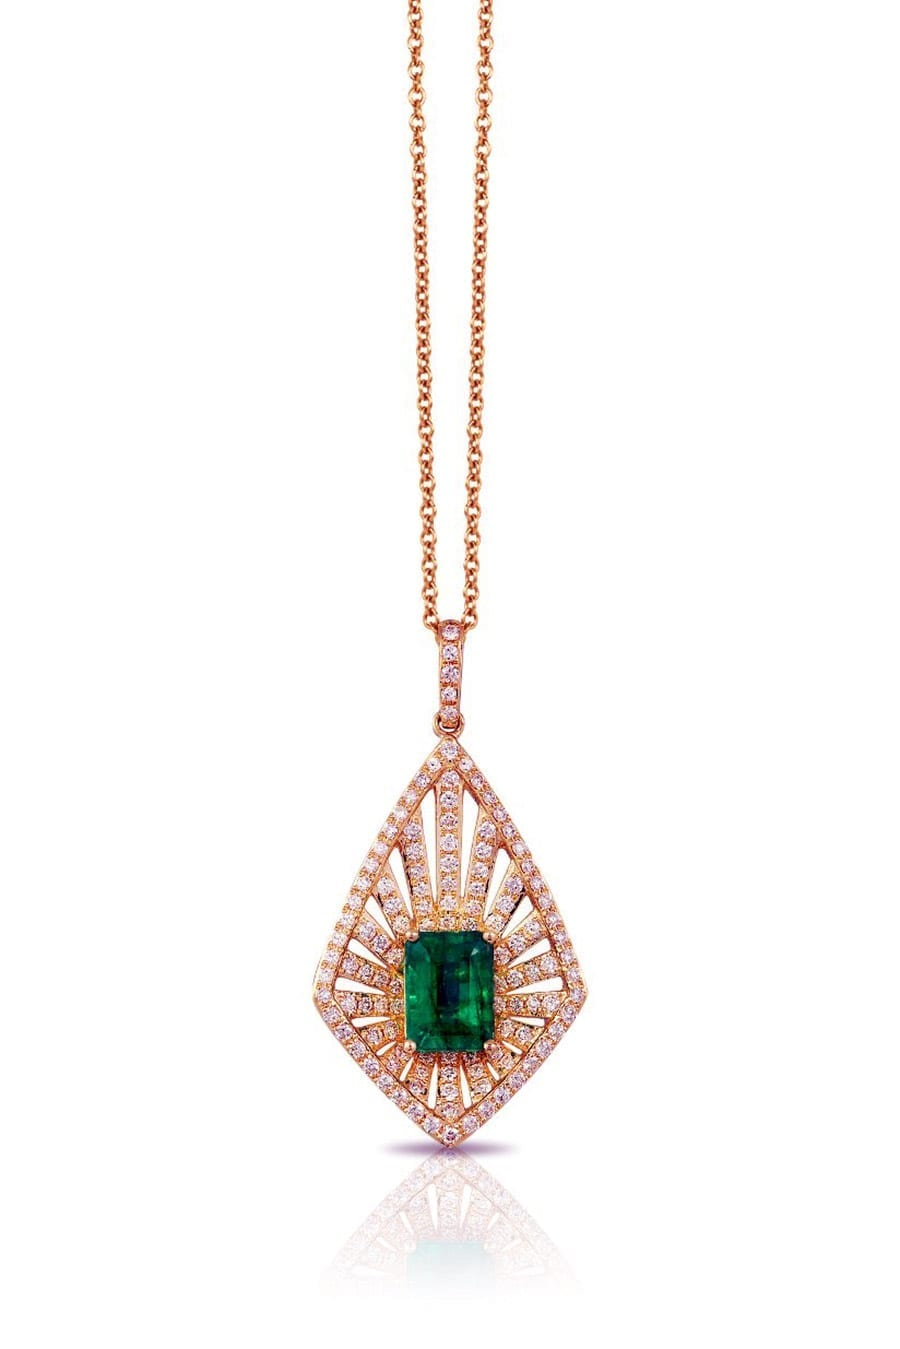 Duty-free Jewelry in Barbados available at Colombian Emeralds International.